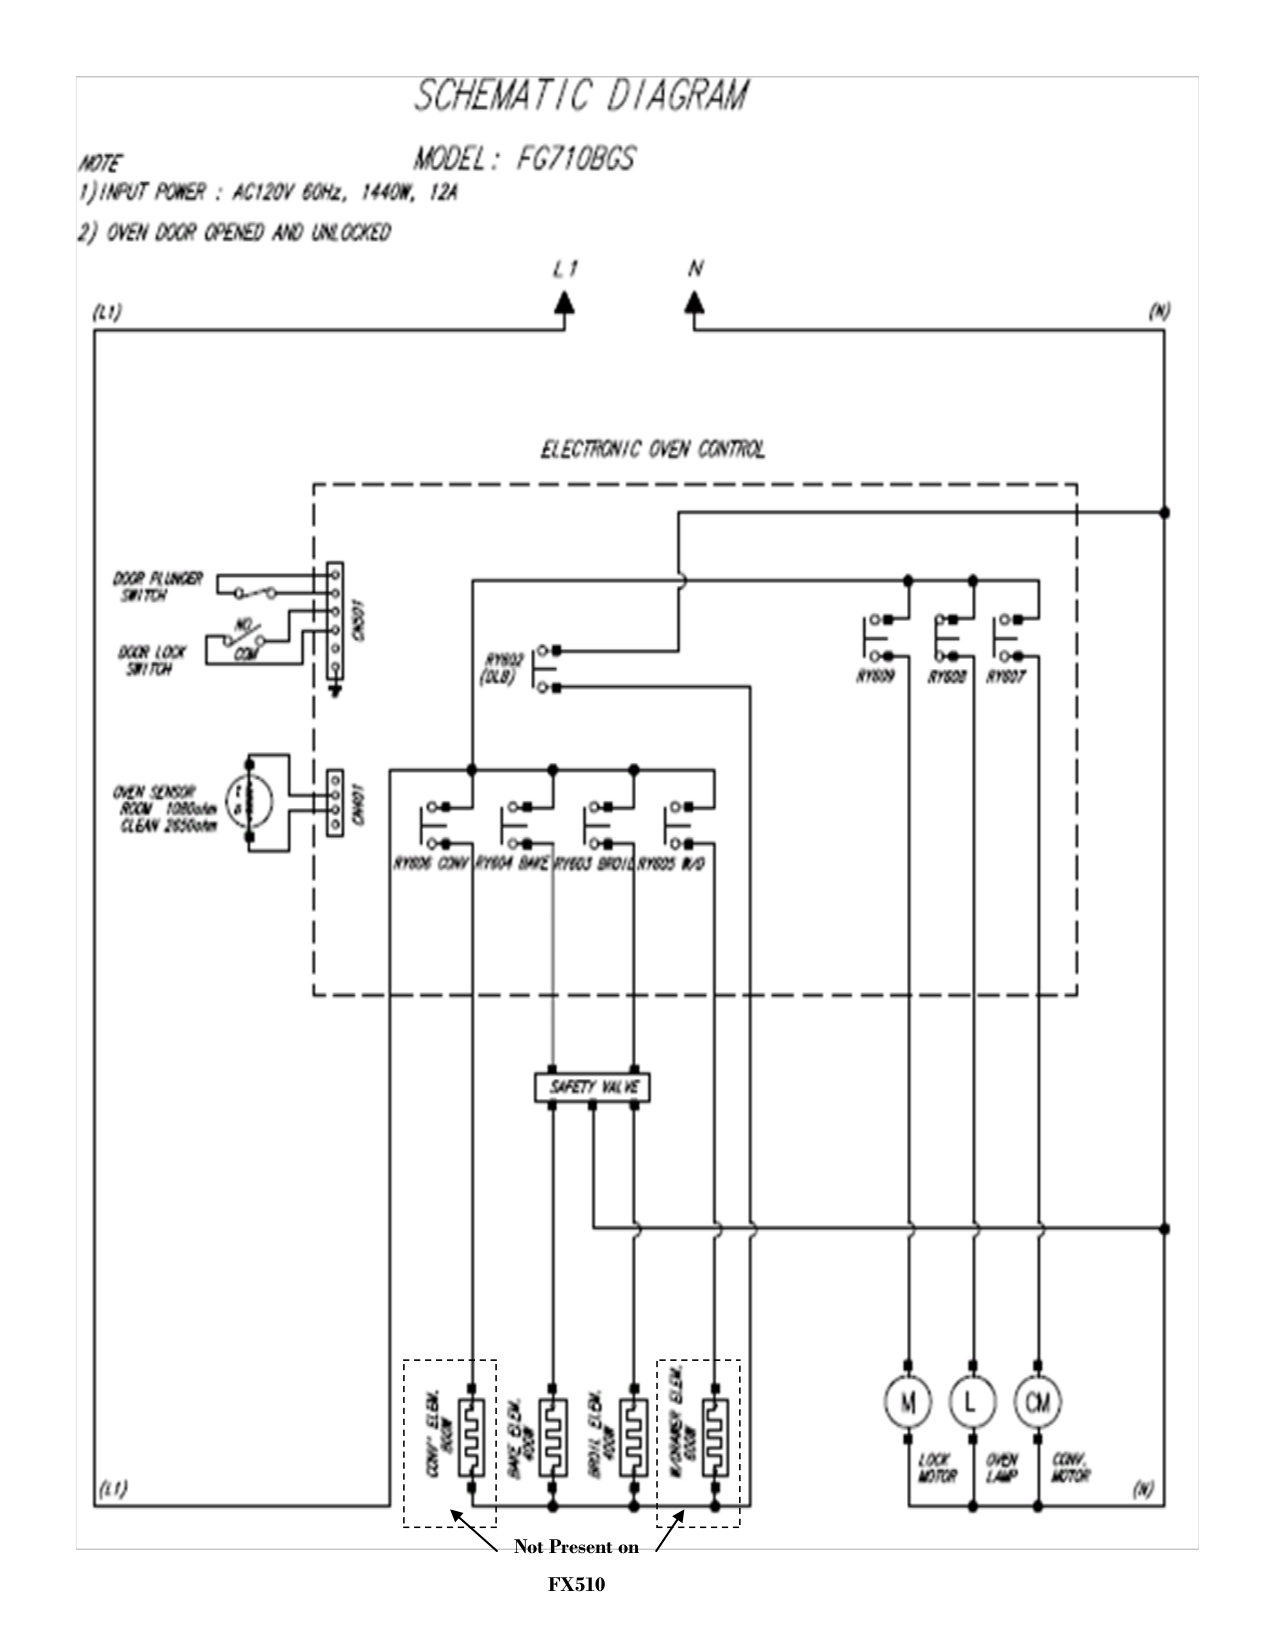 Pdf Manual For Samsung Range Fx710bgs Oven Door Schematic Page Preview